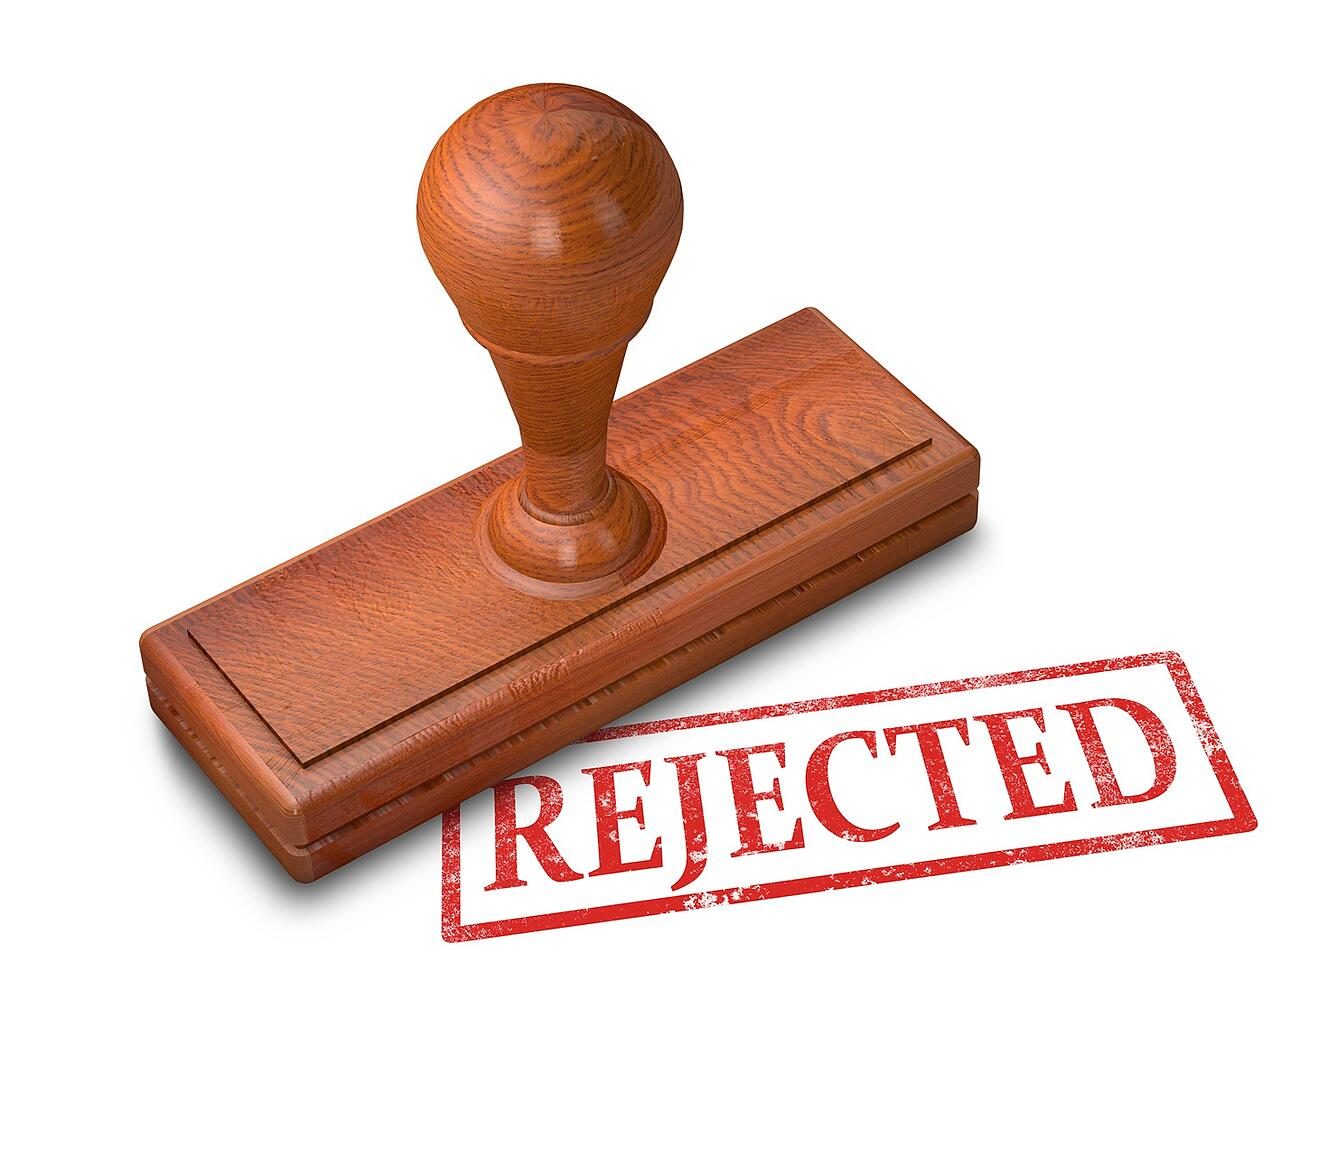 3 Reasons Your Contributed Articles Are Rejected